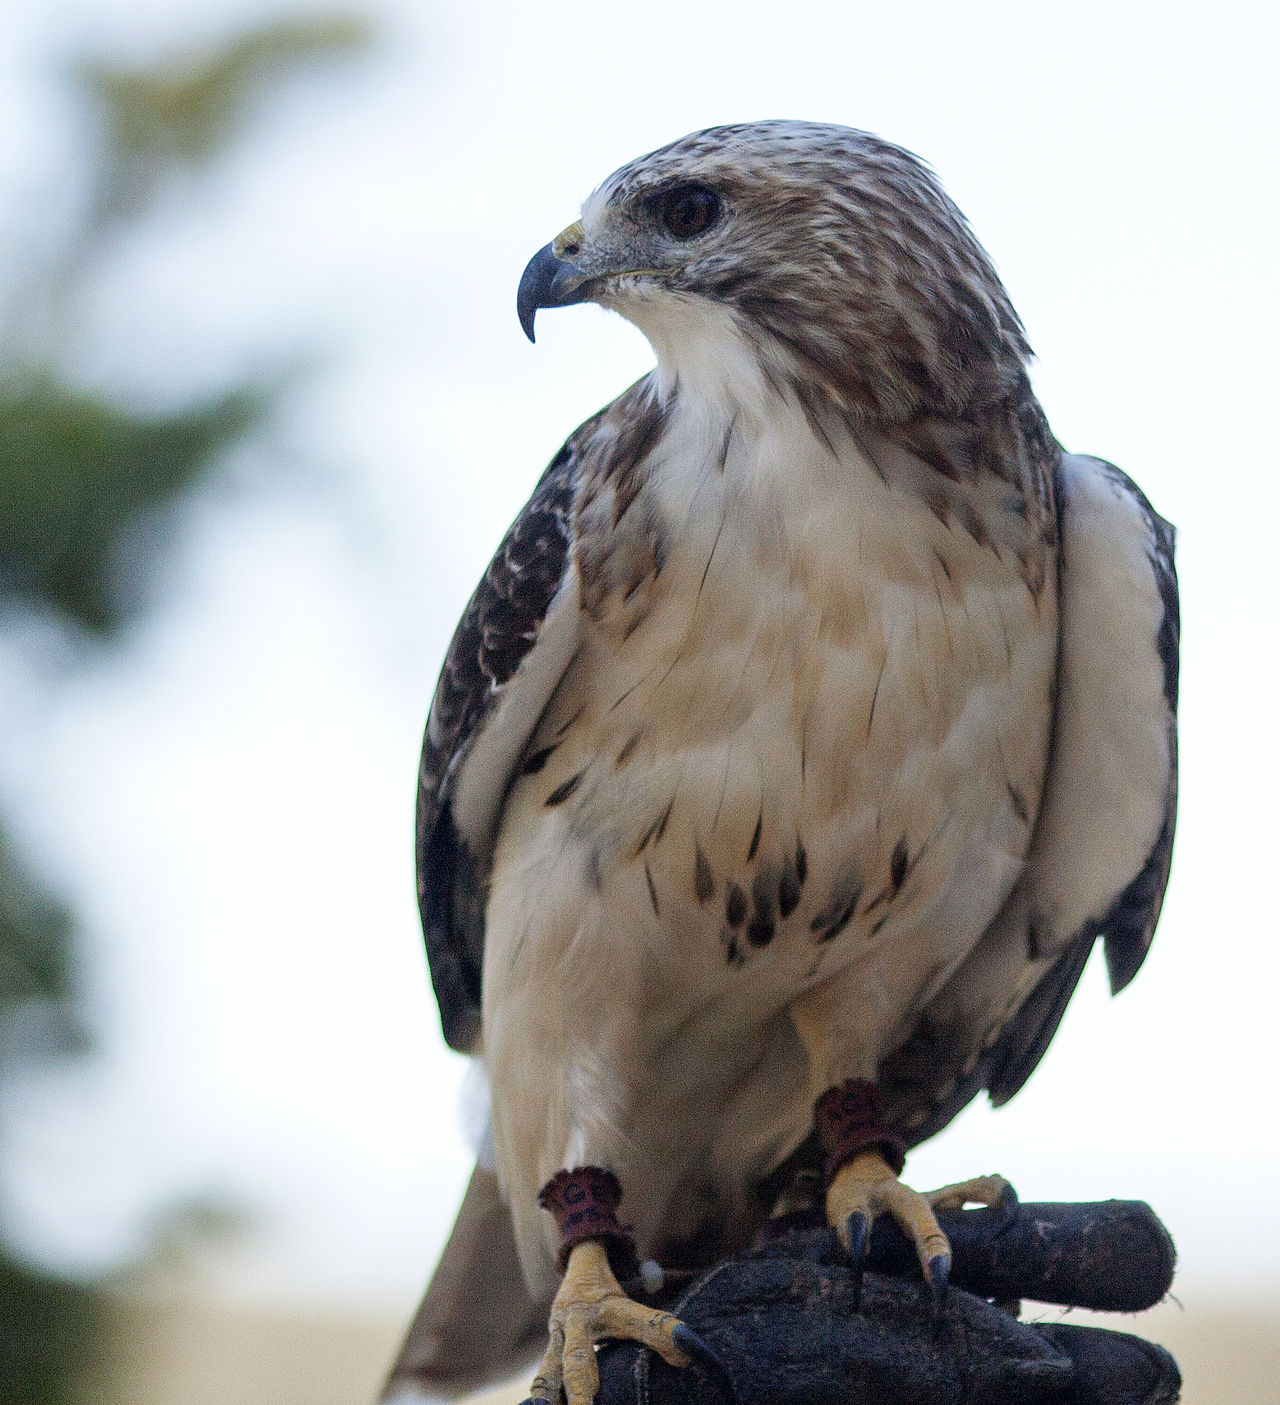 Animal Themes Animal Wildlife Animals In The Wild Bird Bird Of Prey Close-up Day Hawk Nature No People One Animal Outdoors Perching